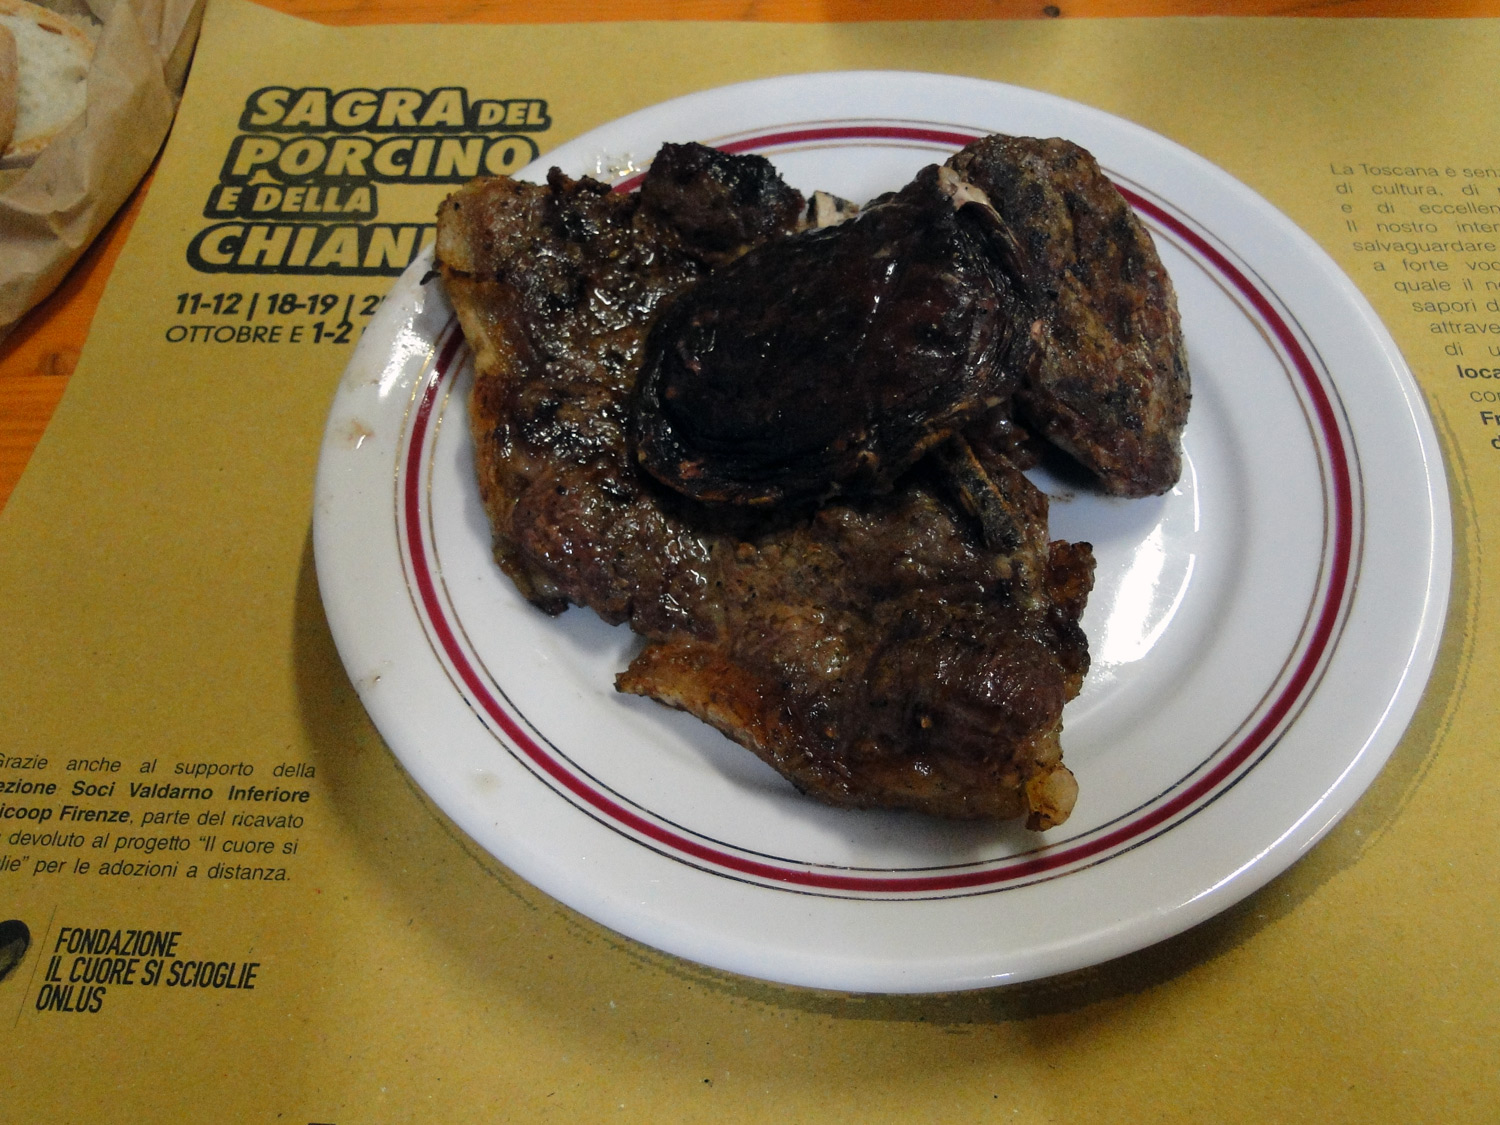 Grilled beef steak with porcini mushrooms